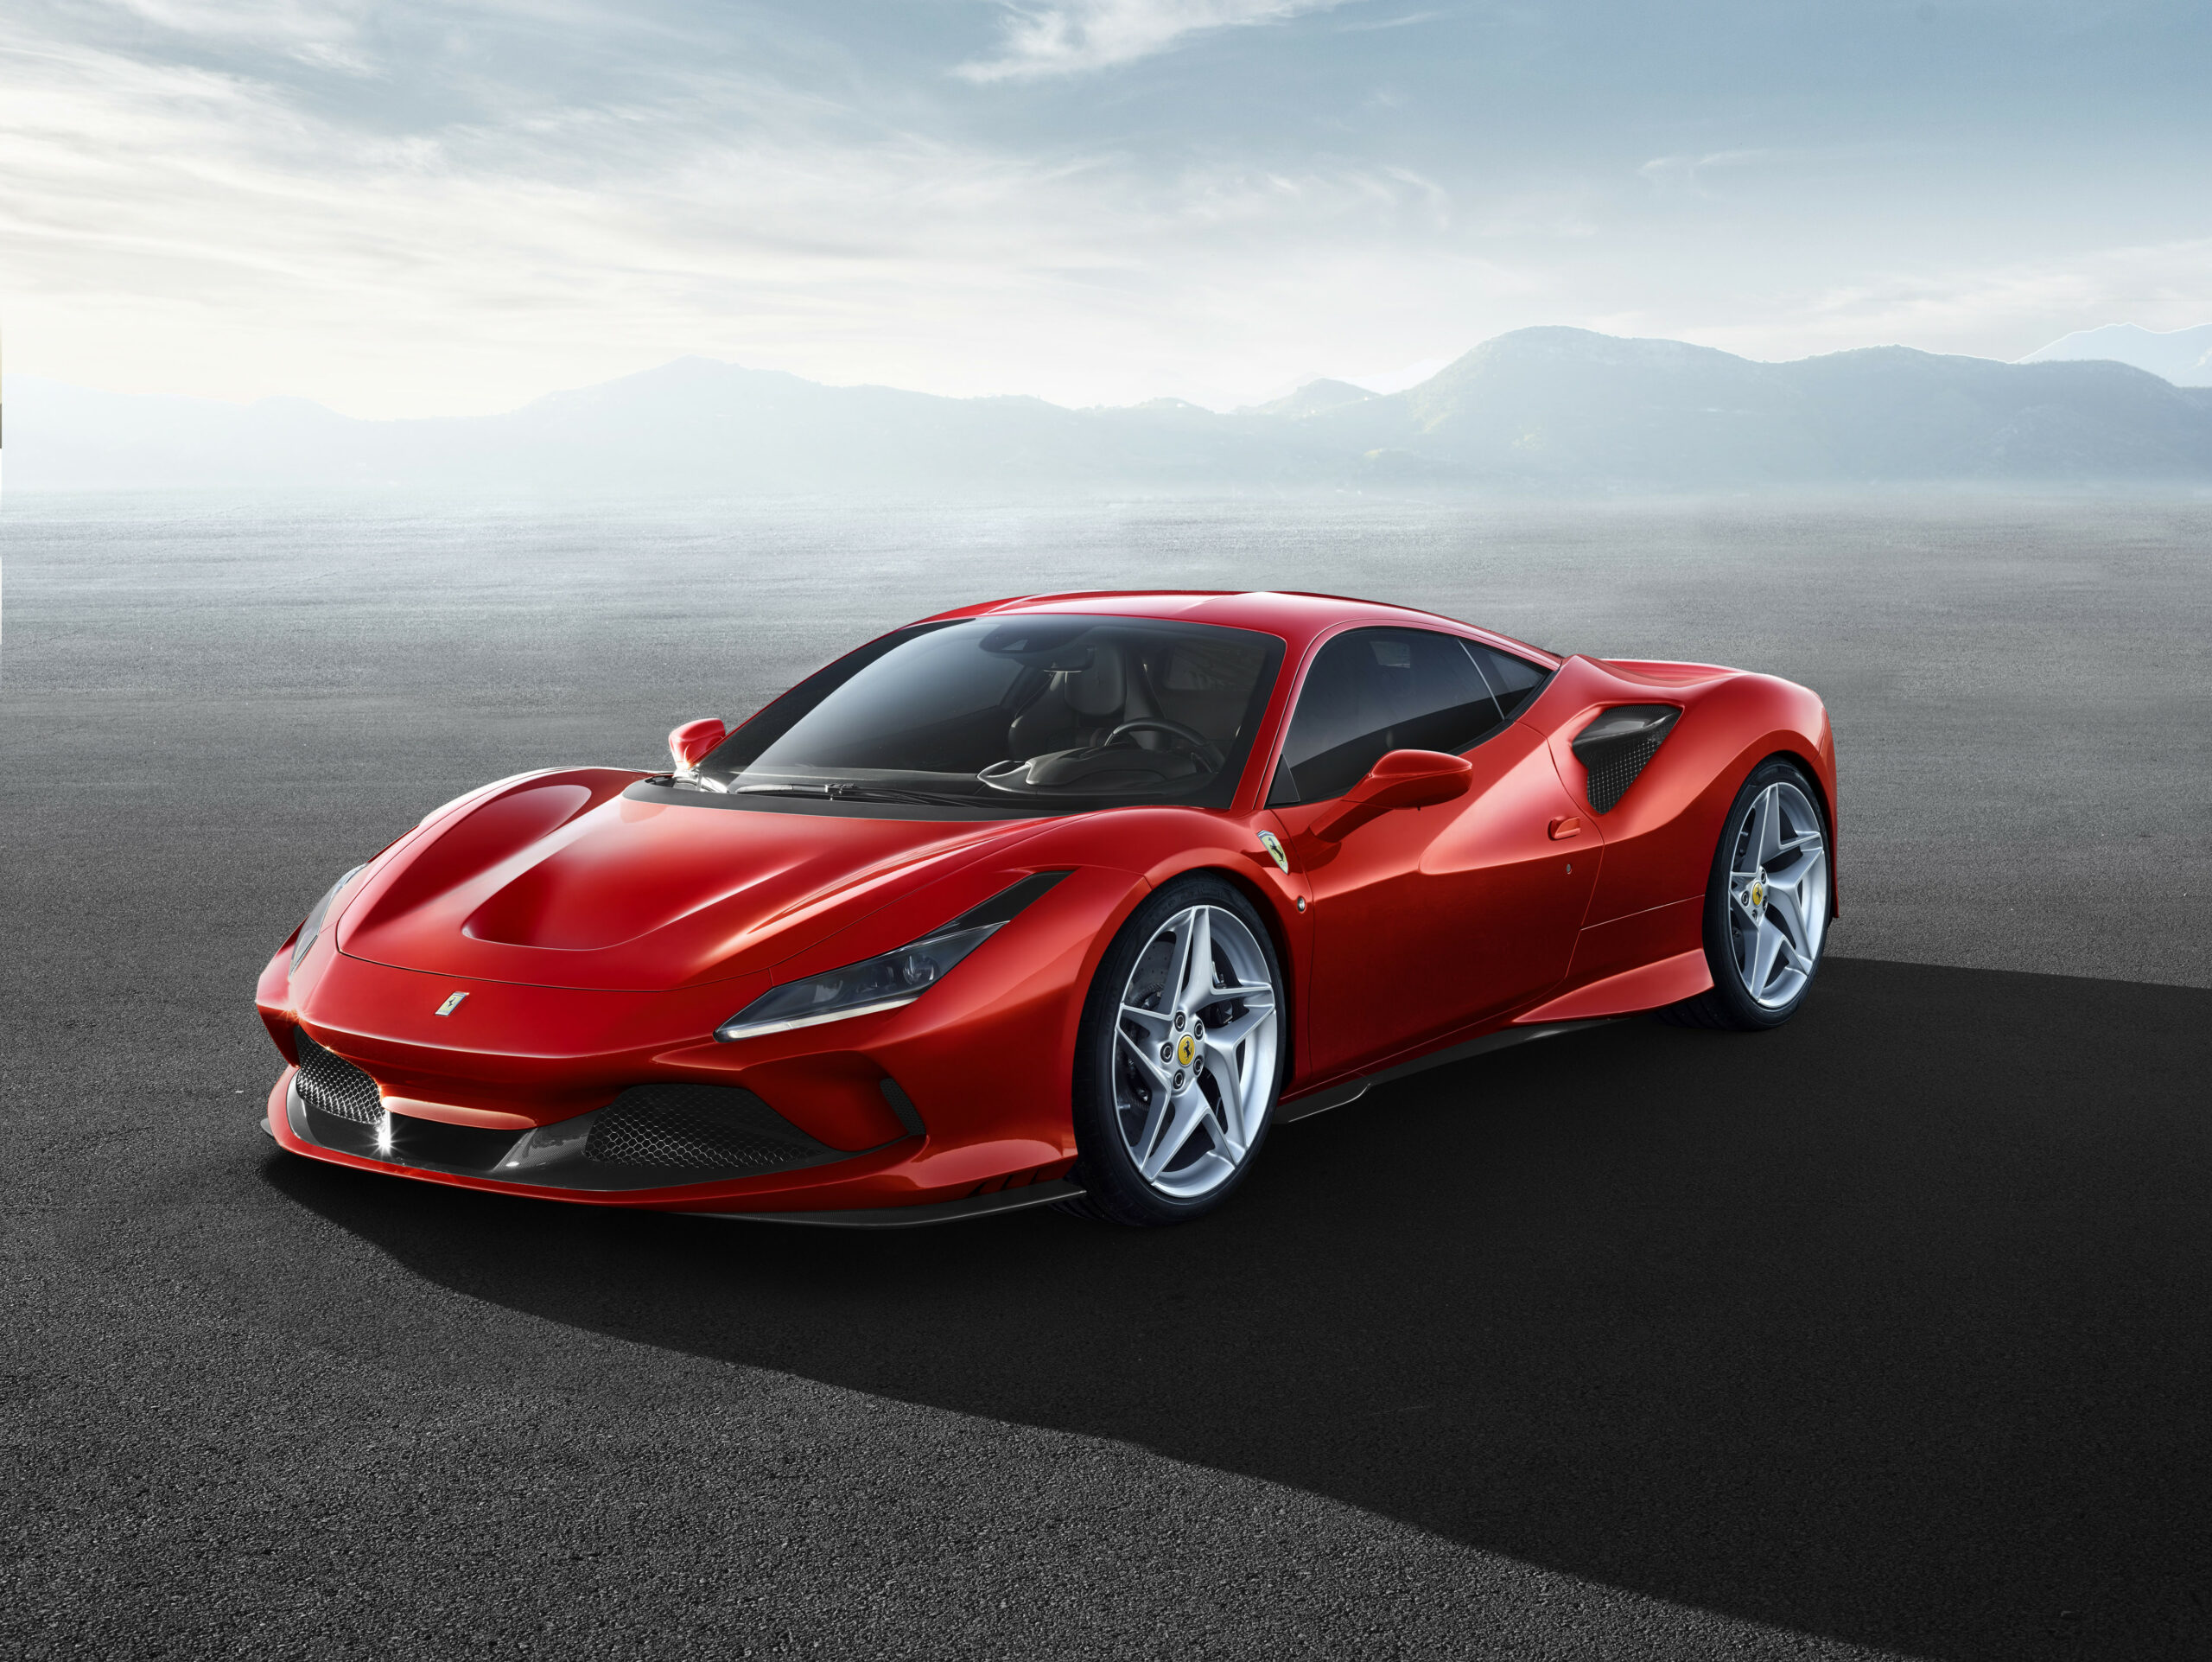 The 7 Ferrari F7 Tributo Joins Ferrari's Lineup As A Successor ...